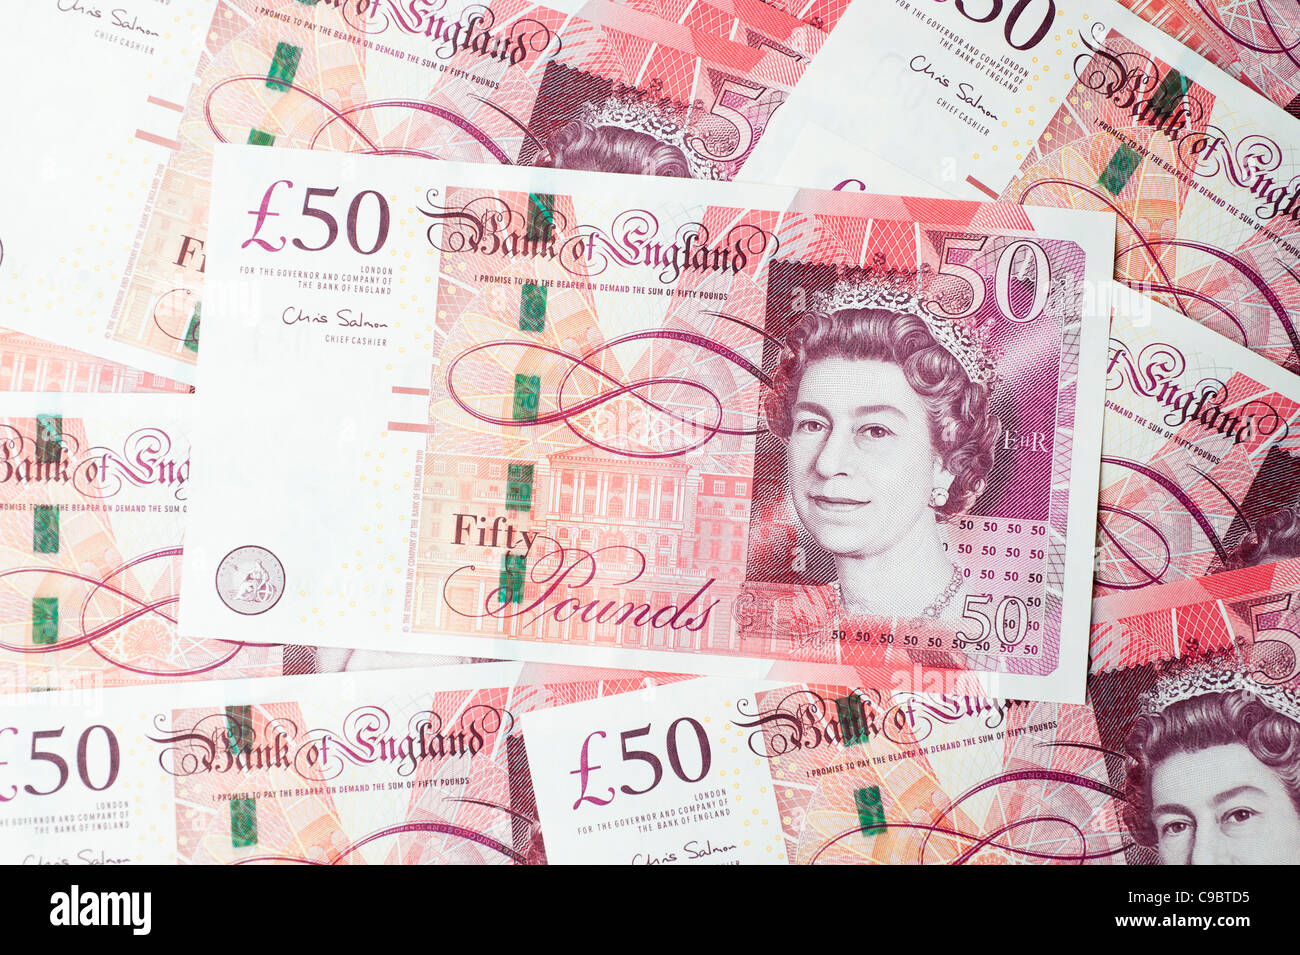 New UK £50 notes, the highest denomination note in circulation, issued by the Bank of England on 2 November - Stock Image